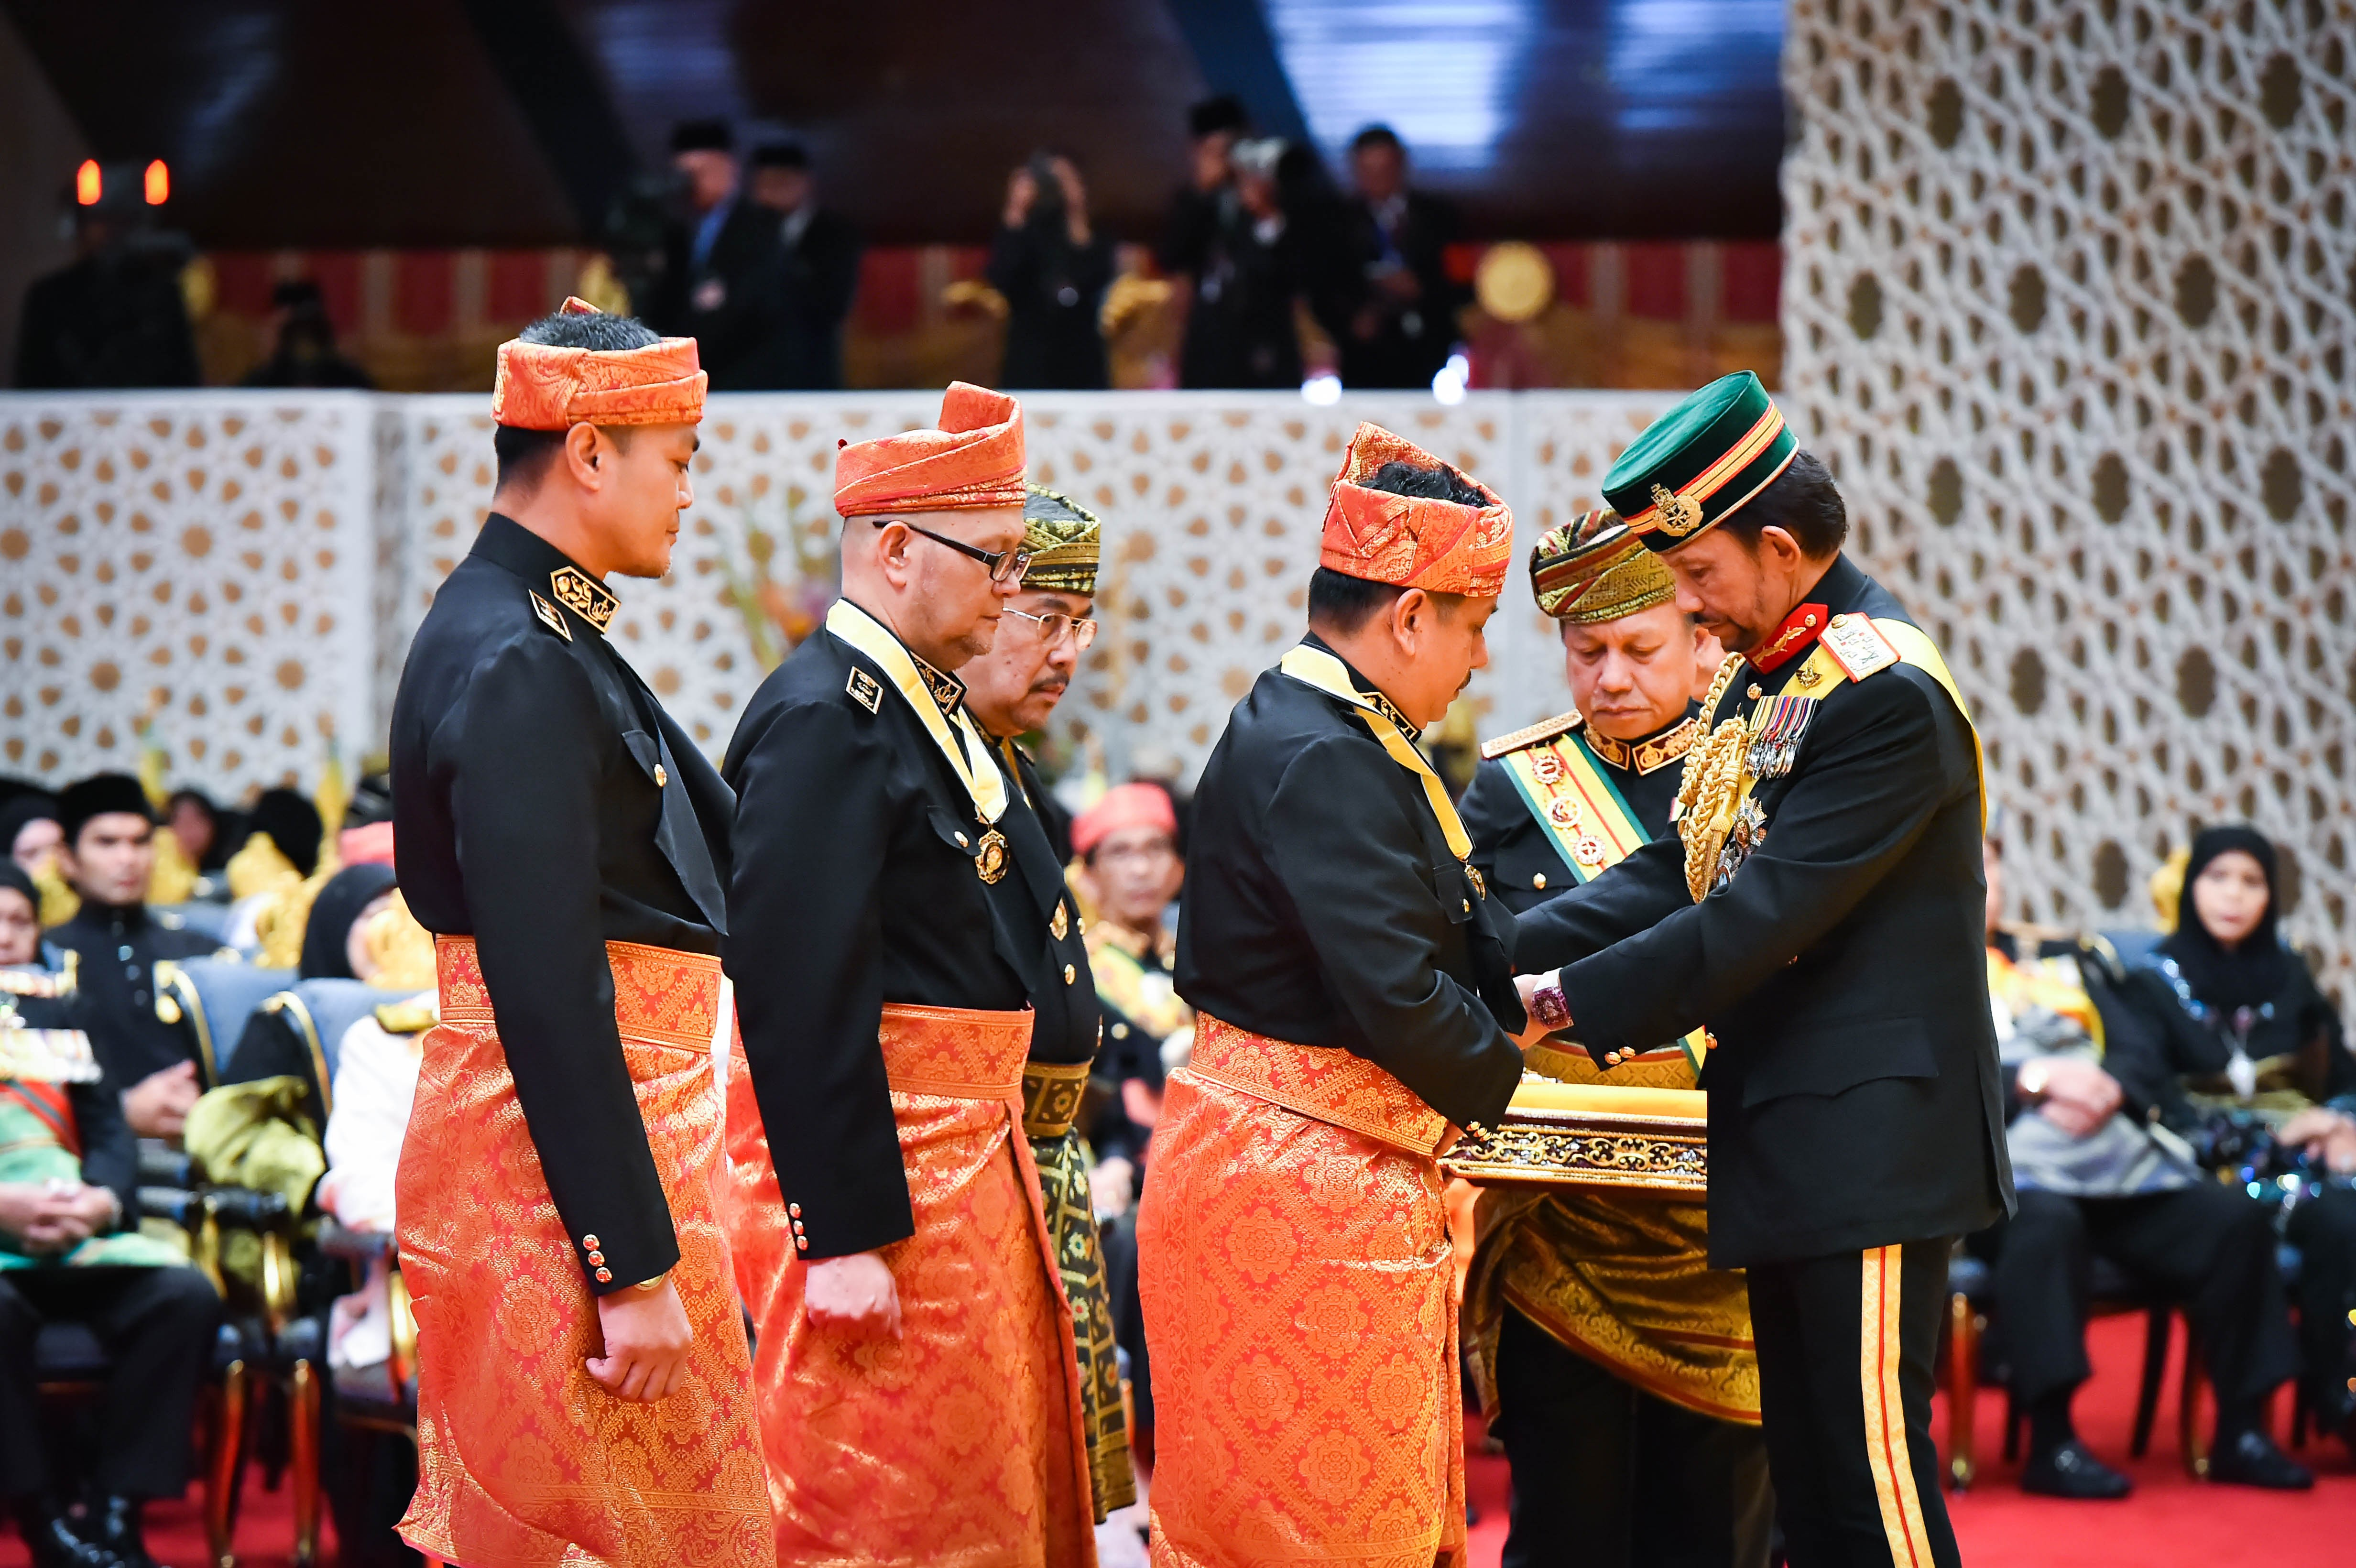 ​HIS MAJESTY THE SULTAN AND YANG DI-PERTUAN OF BRUNEI DARUSSALAM CONFERRED STATE DECORATIONS